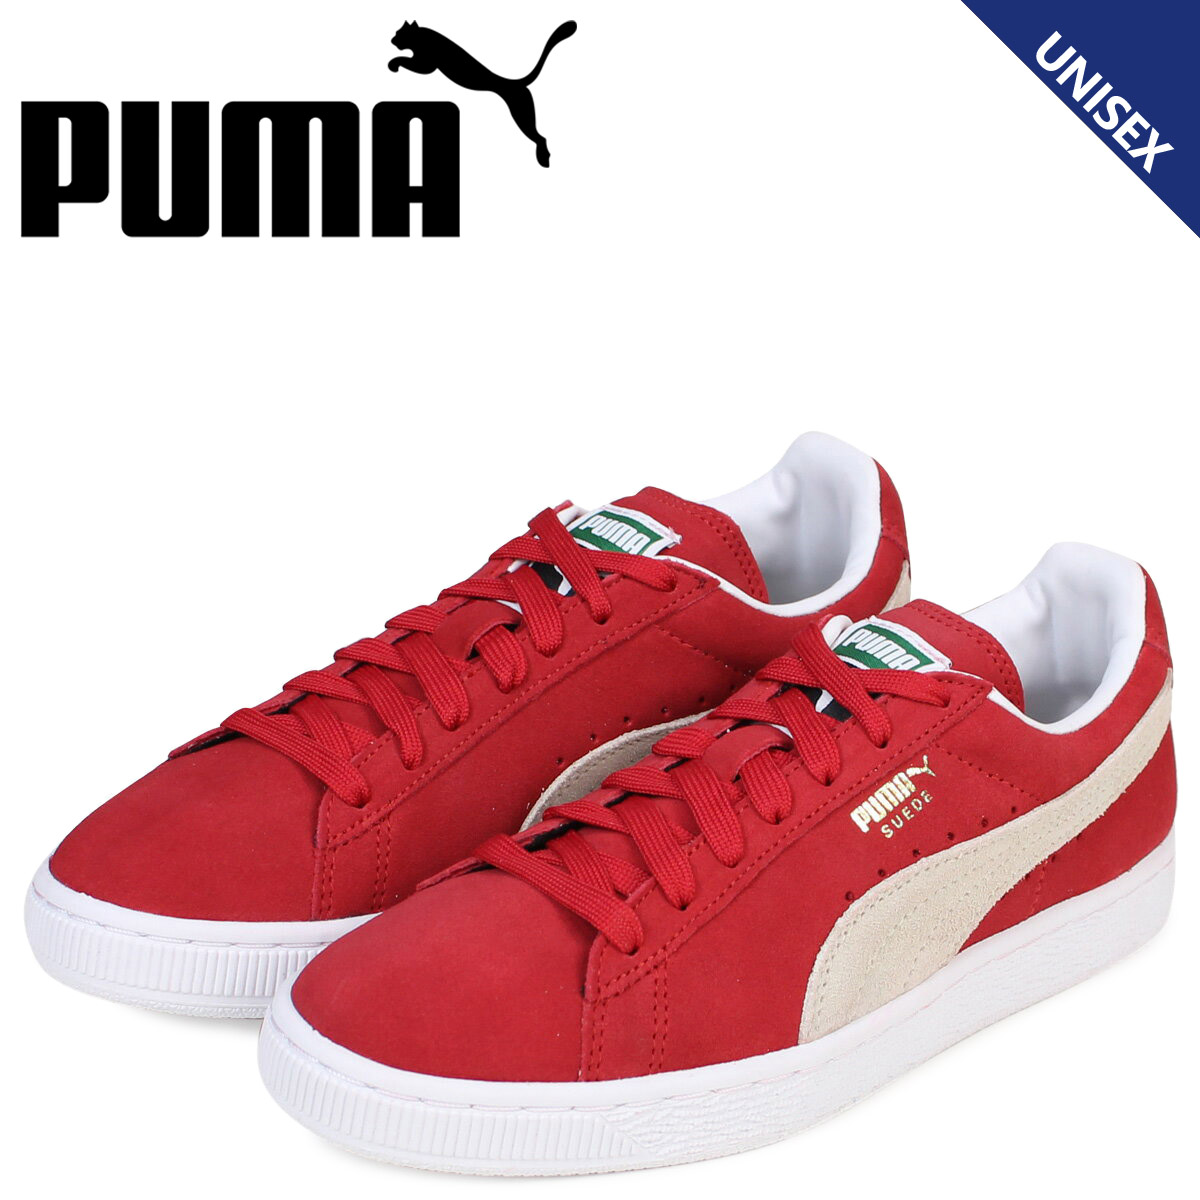 best loved 3cb24 5363f PUMA Puma suede classical music sneakers SUEDE CLASSIC + 352,634-65 men's  lady's shoes red red